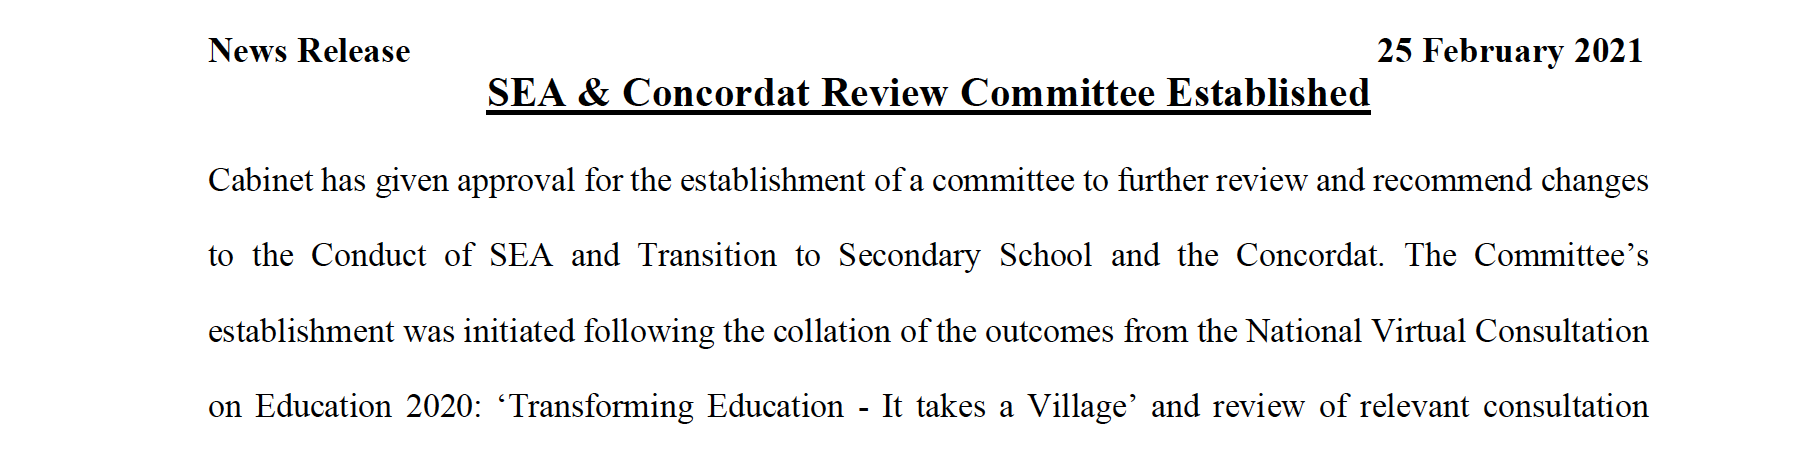 News Release – SEA & Concordat Review Committee Established